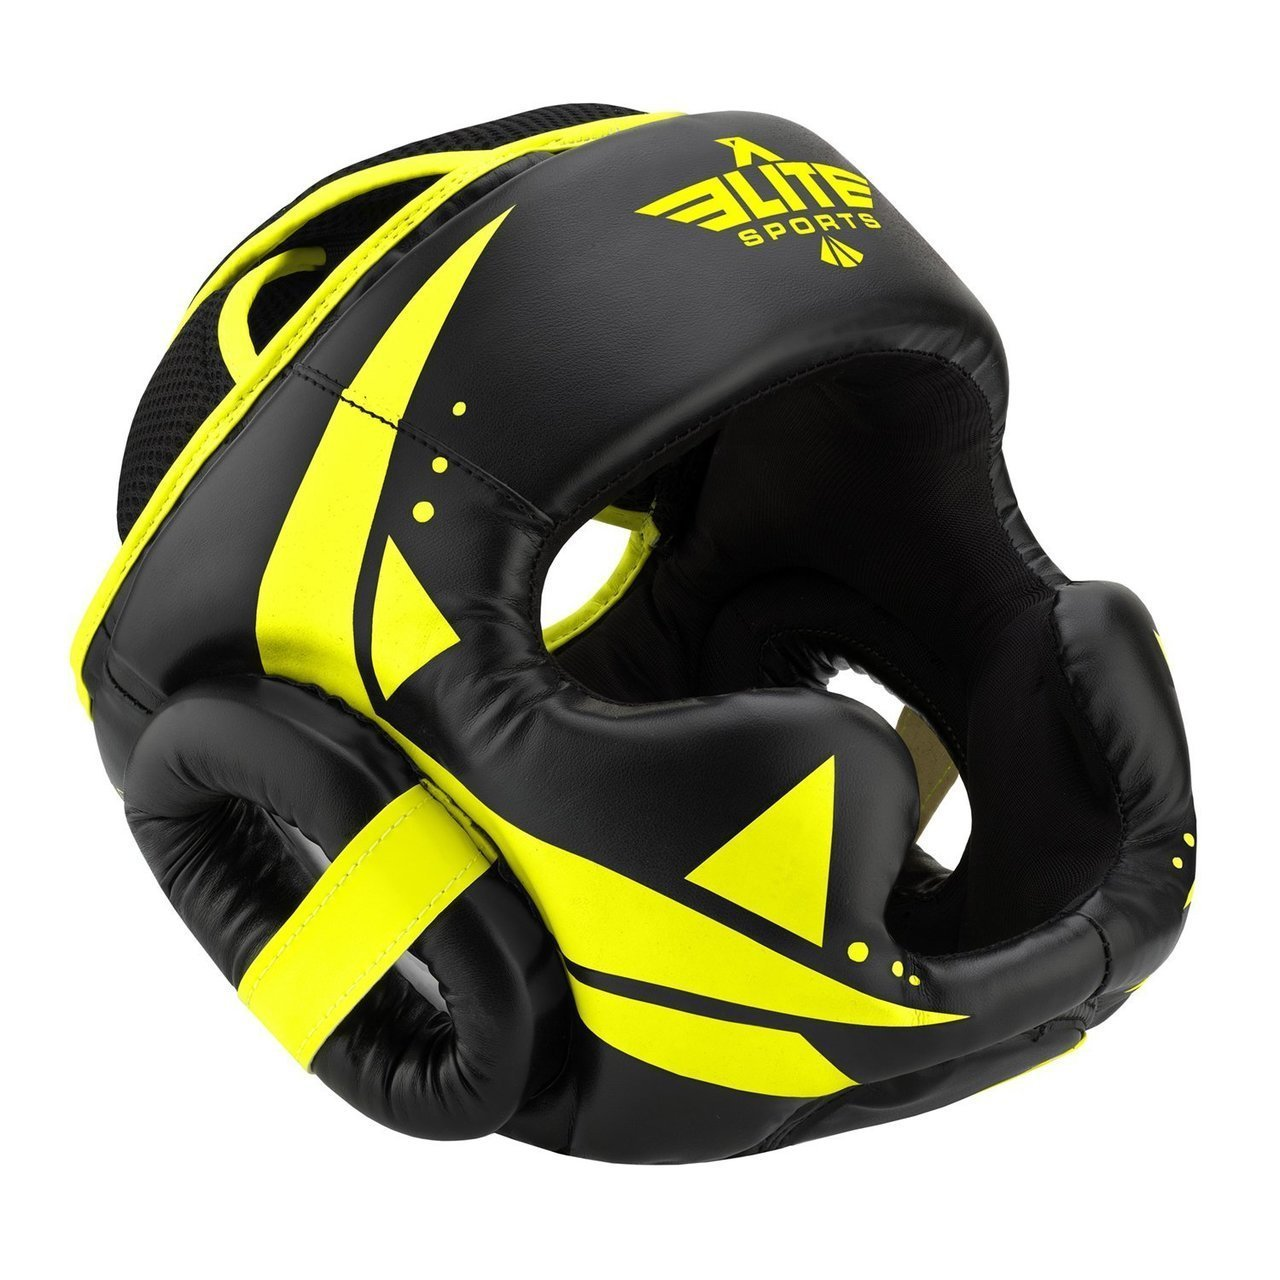 Load image into Gallery viewer, Elite Sports Star Series Sparring Black/Hi Viz Boxing Headgear